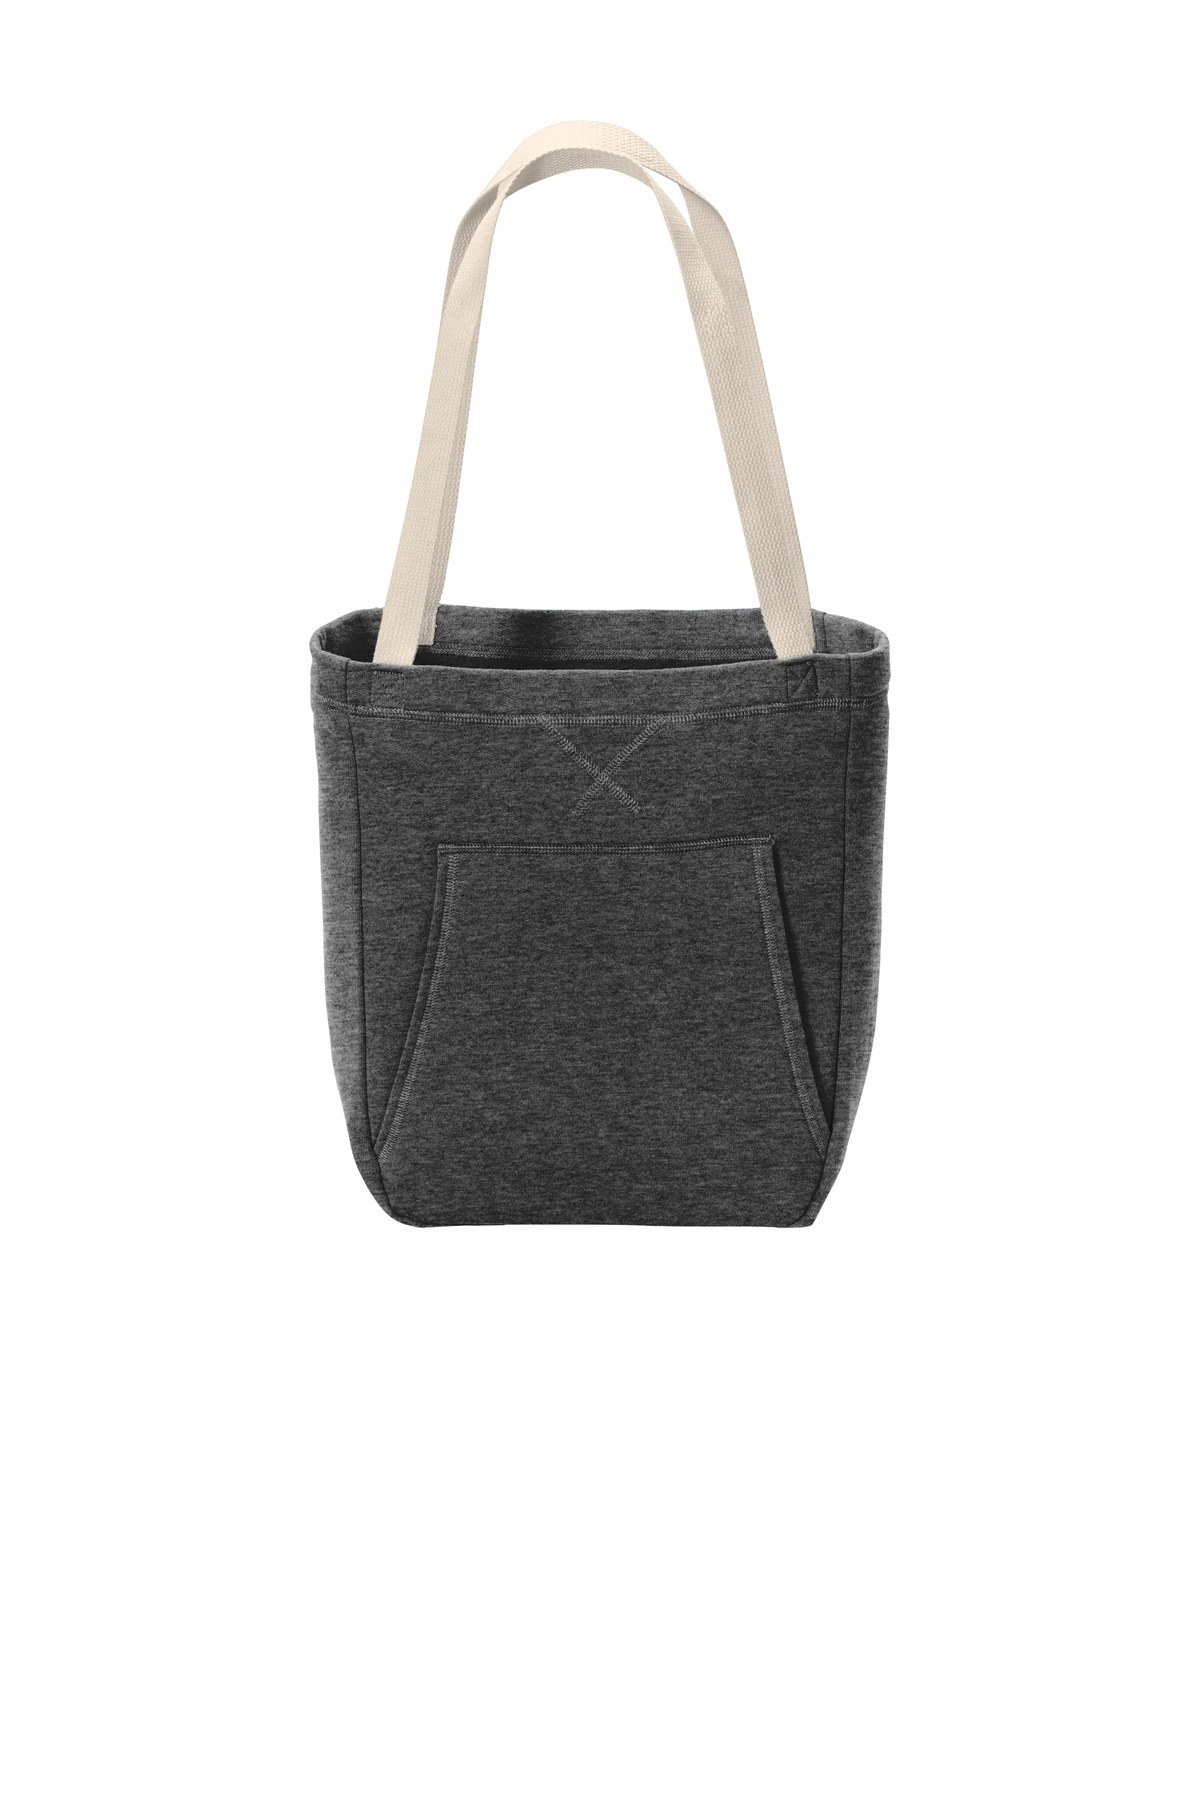 Port & Company  ®  Core Fleece Sweatshirt Tote BG415 - Dark Heather Grey